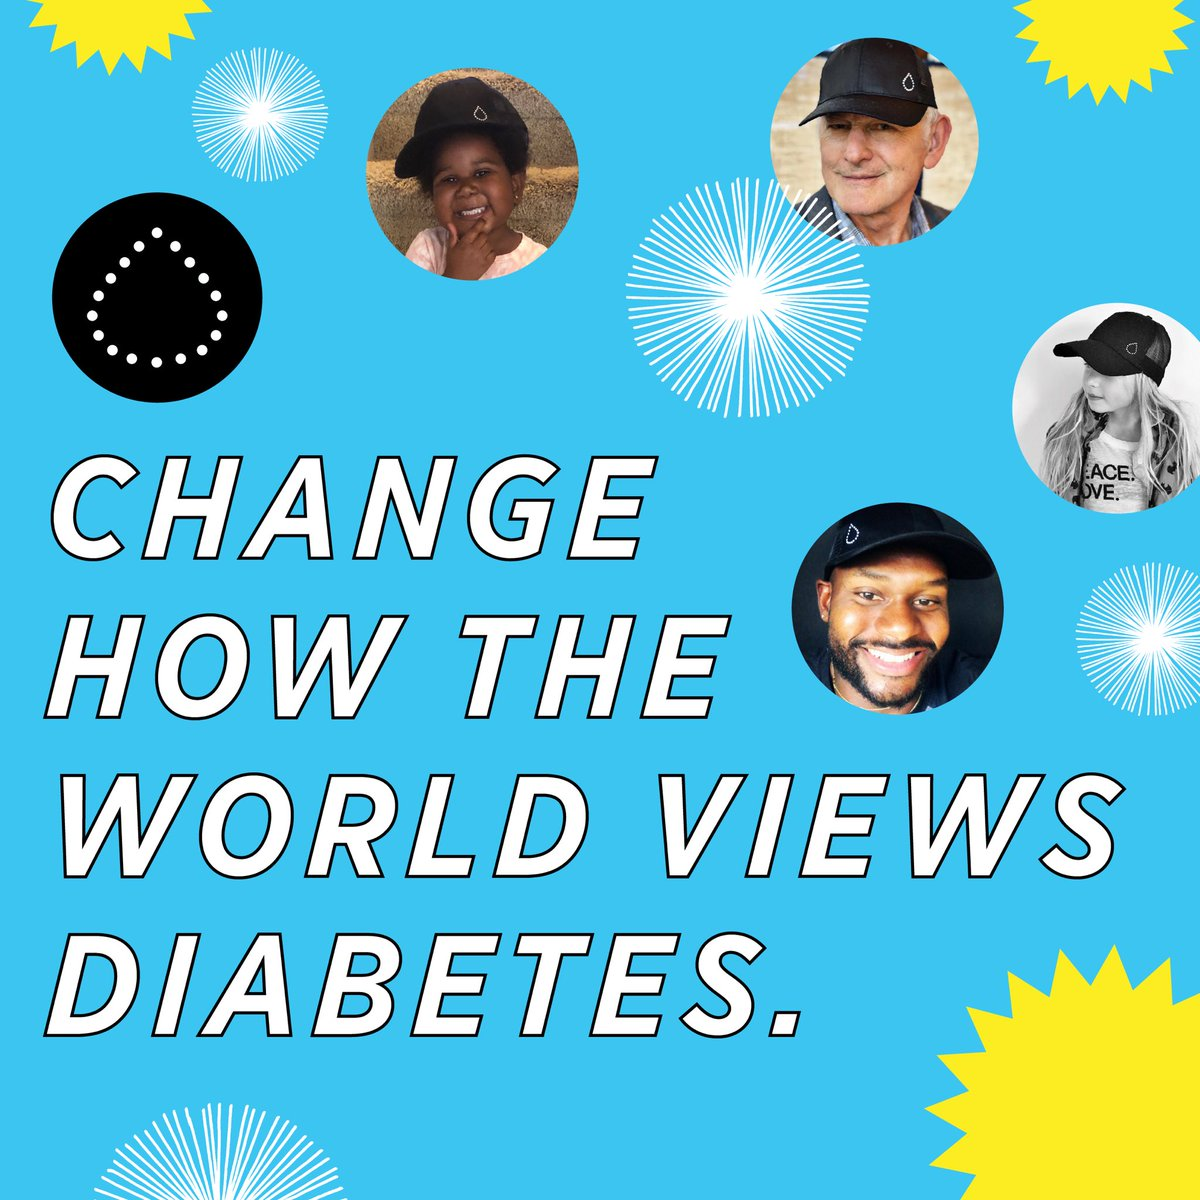 Today is #WorldDiabetesDay.@BeyondType1 is working to raise awareness about what Type1& Type 2 diabetes are REALLY like. Type1diabetes is part of my everyday life. It comes with highs & lows and requiresvigilance, but doesn't keep me from doing what I love. #TheDropSpotted